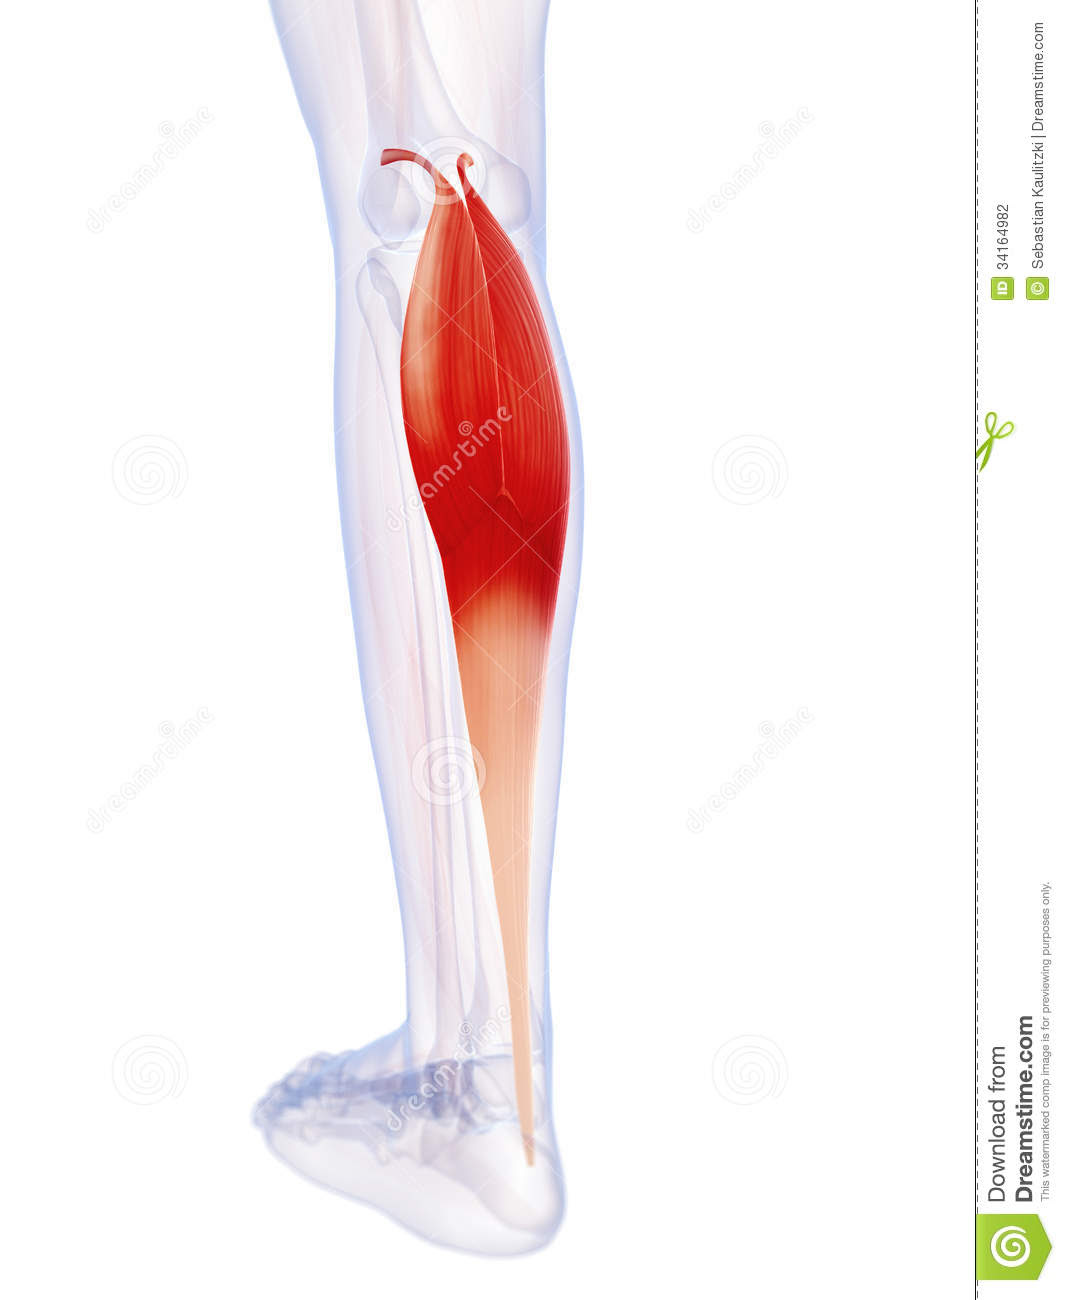 The Gastrocnemius Muscle Stock Photography - Image: 34164982